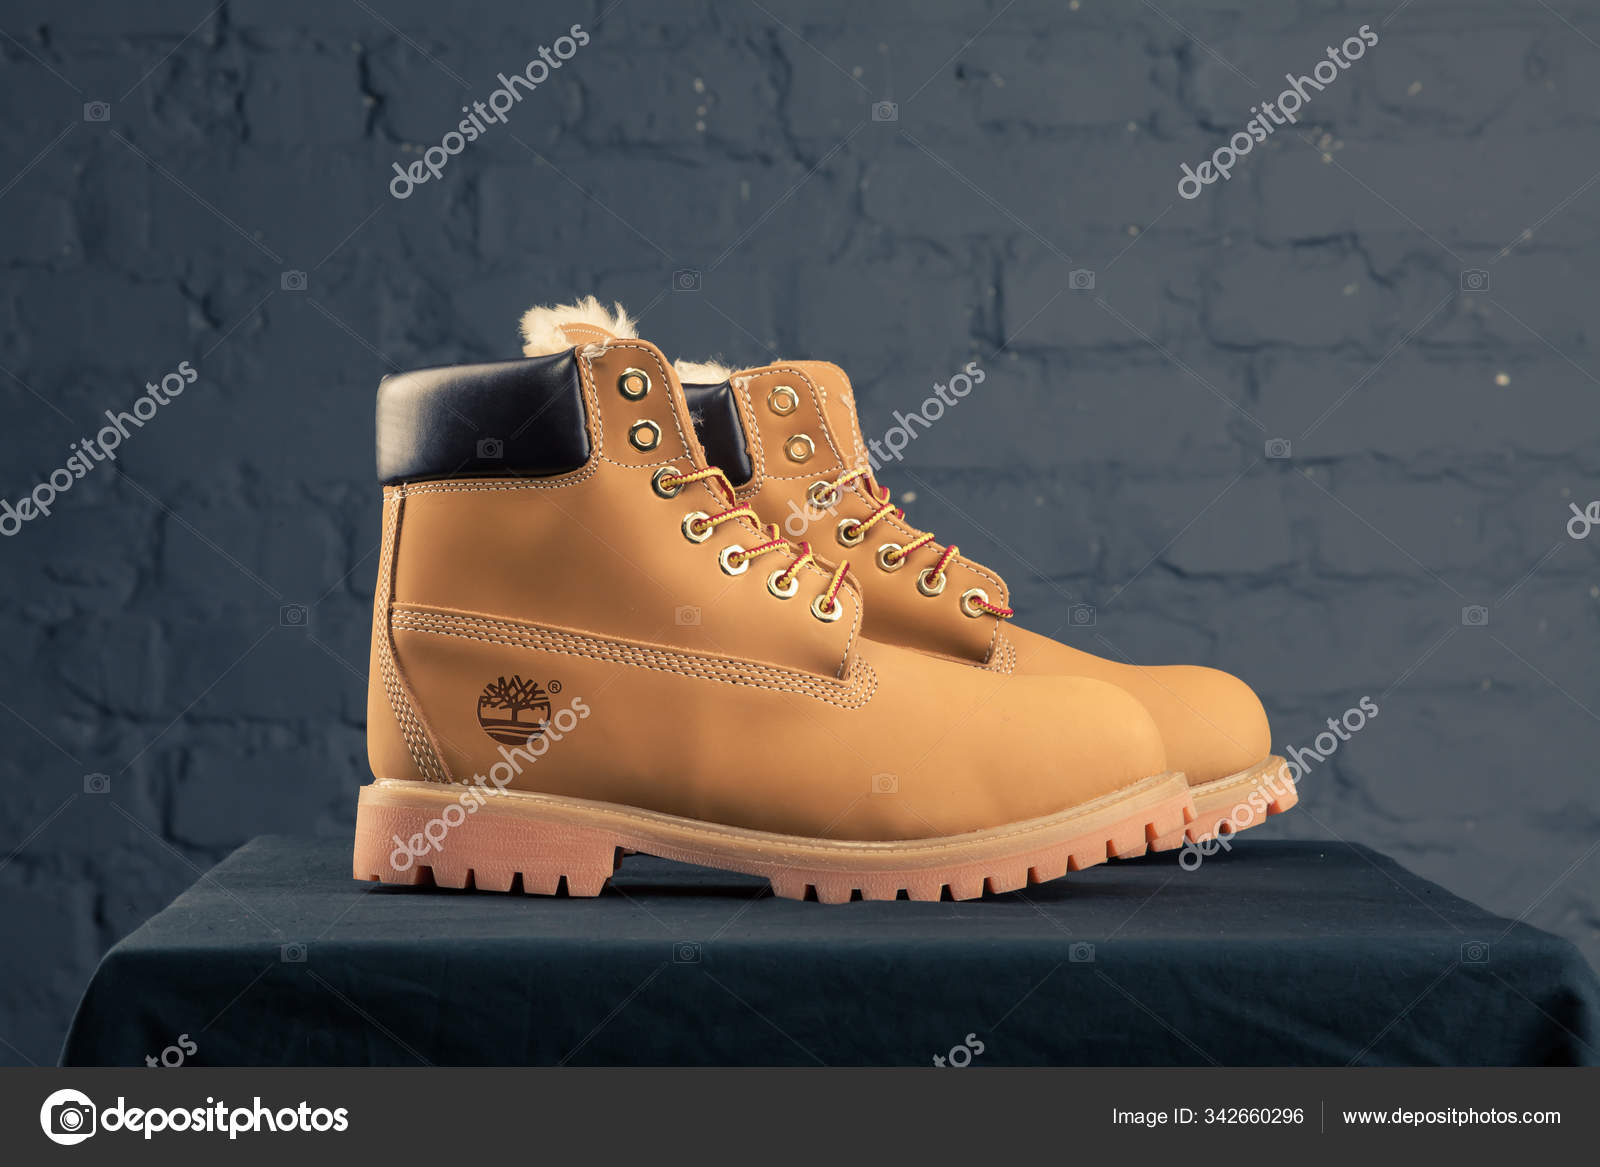 sentar Alerta Confuso  New Beautiful Colorful Nice Timberland Tracking Shoes Sneakers Trainers  Shows – Stock Editorial Photo © sozon #342660296